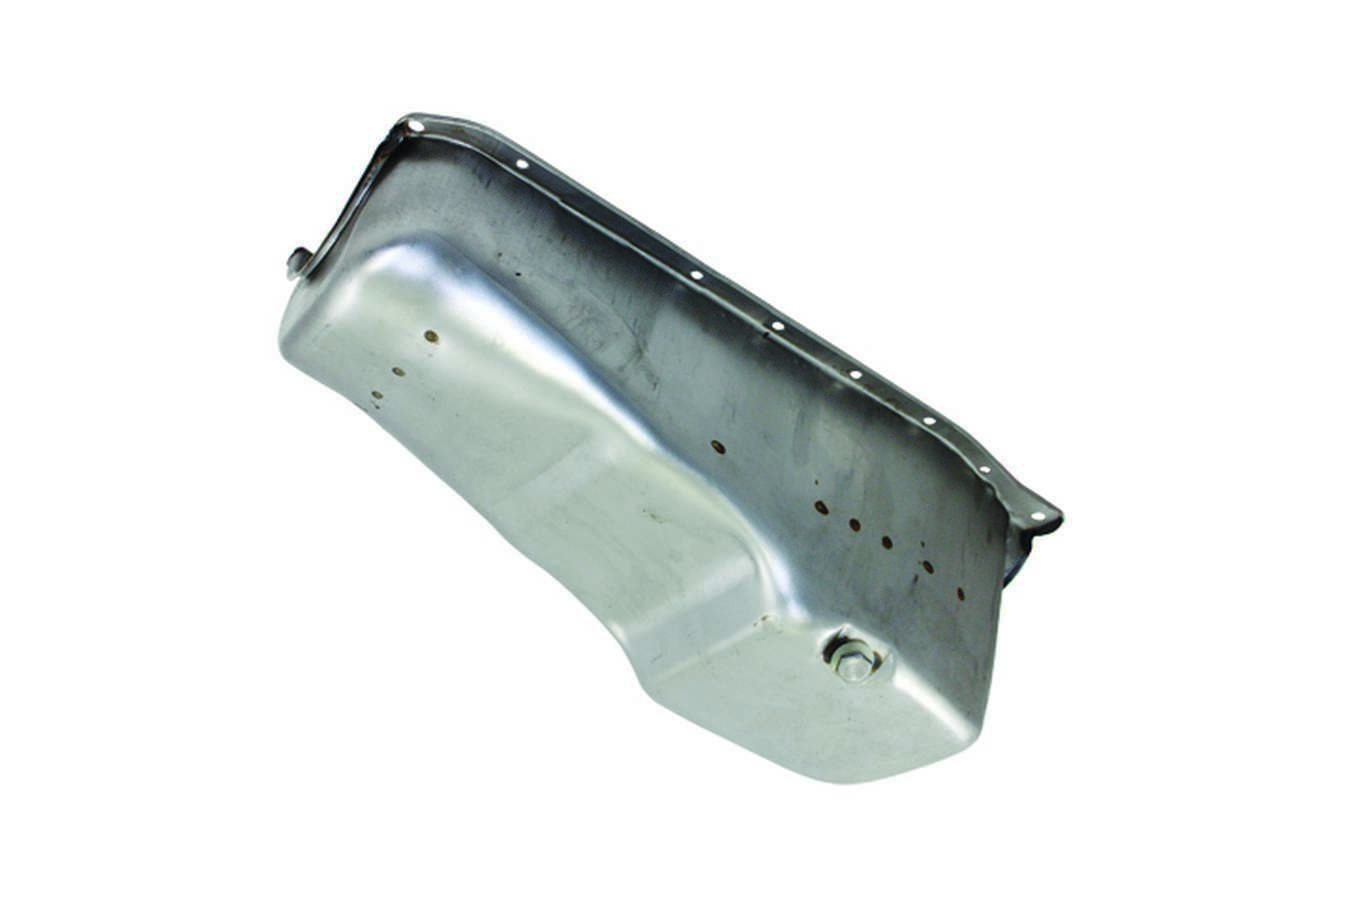 Specialty Products 7441X Engine Oil Pan, Rear Sump, 4 qt, Stock Depth, Steel, Natural, Small Block Chevy, Each